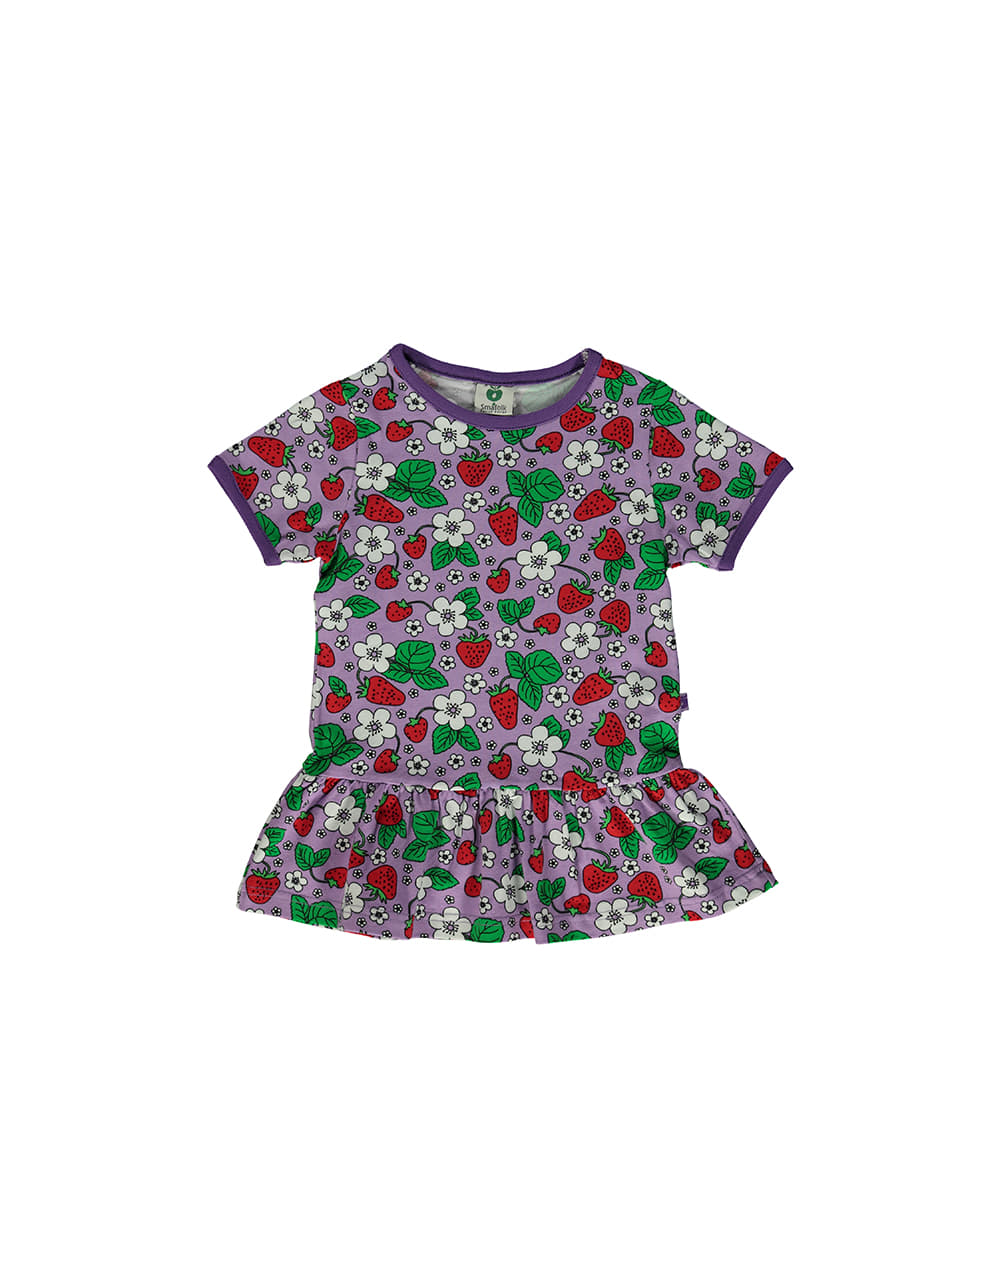 SMAFOLK  T-shirt with skirt and Strawberries  Viola